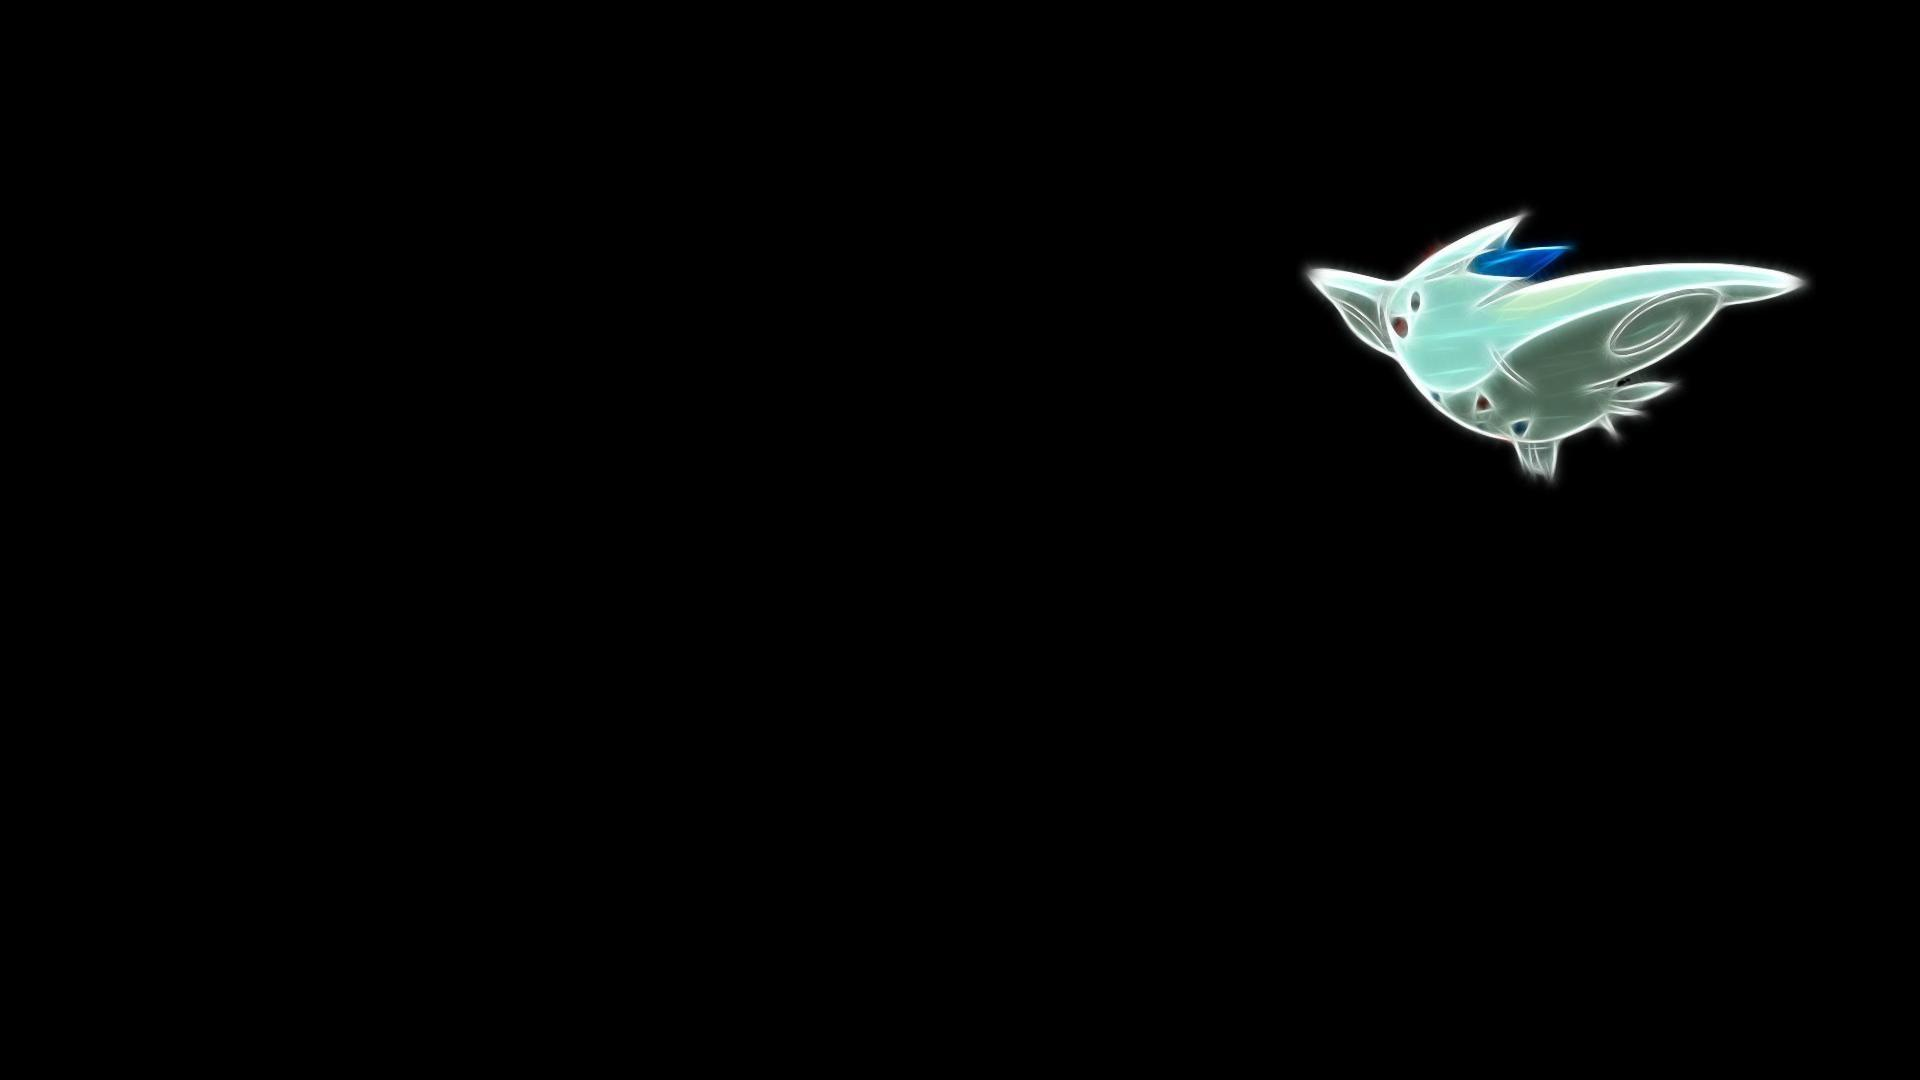 Pokemon togekiss black background wallpaper | (53467)